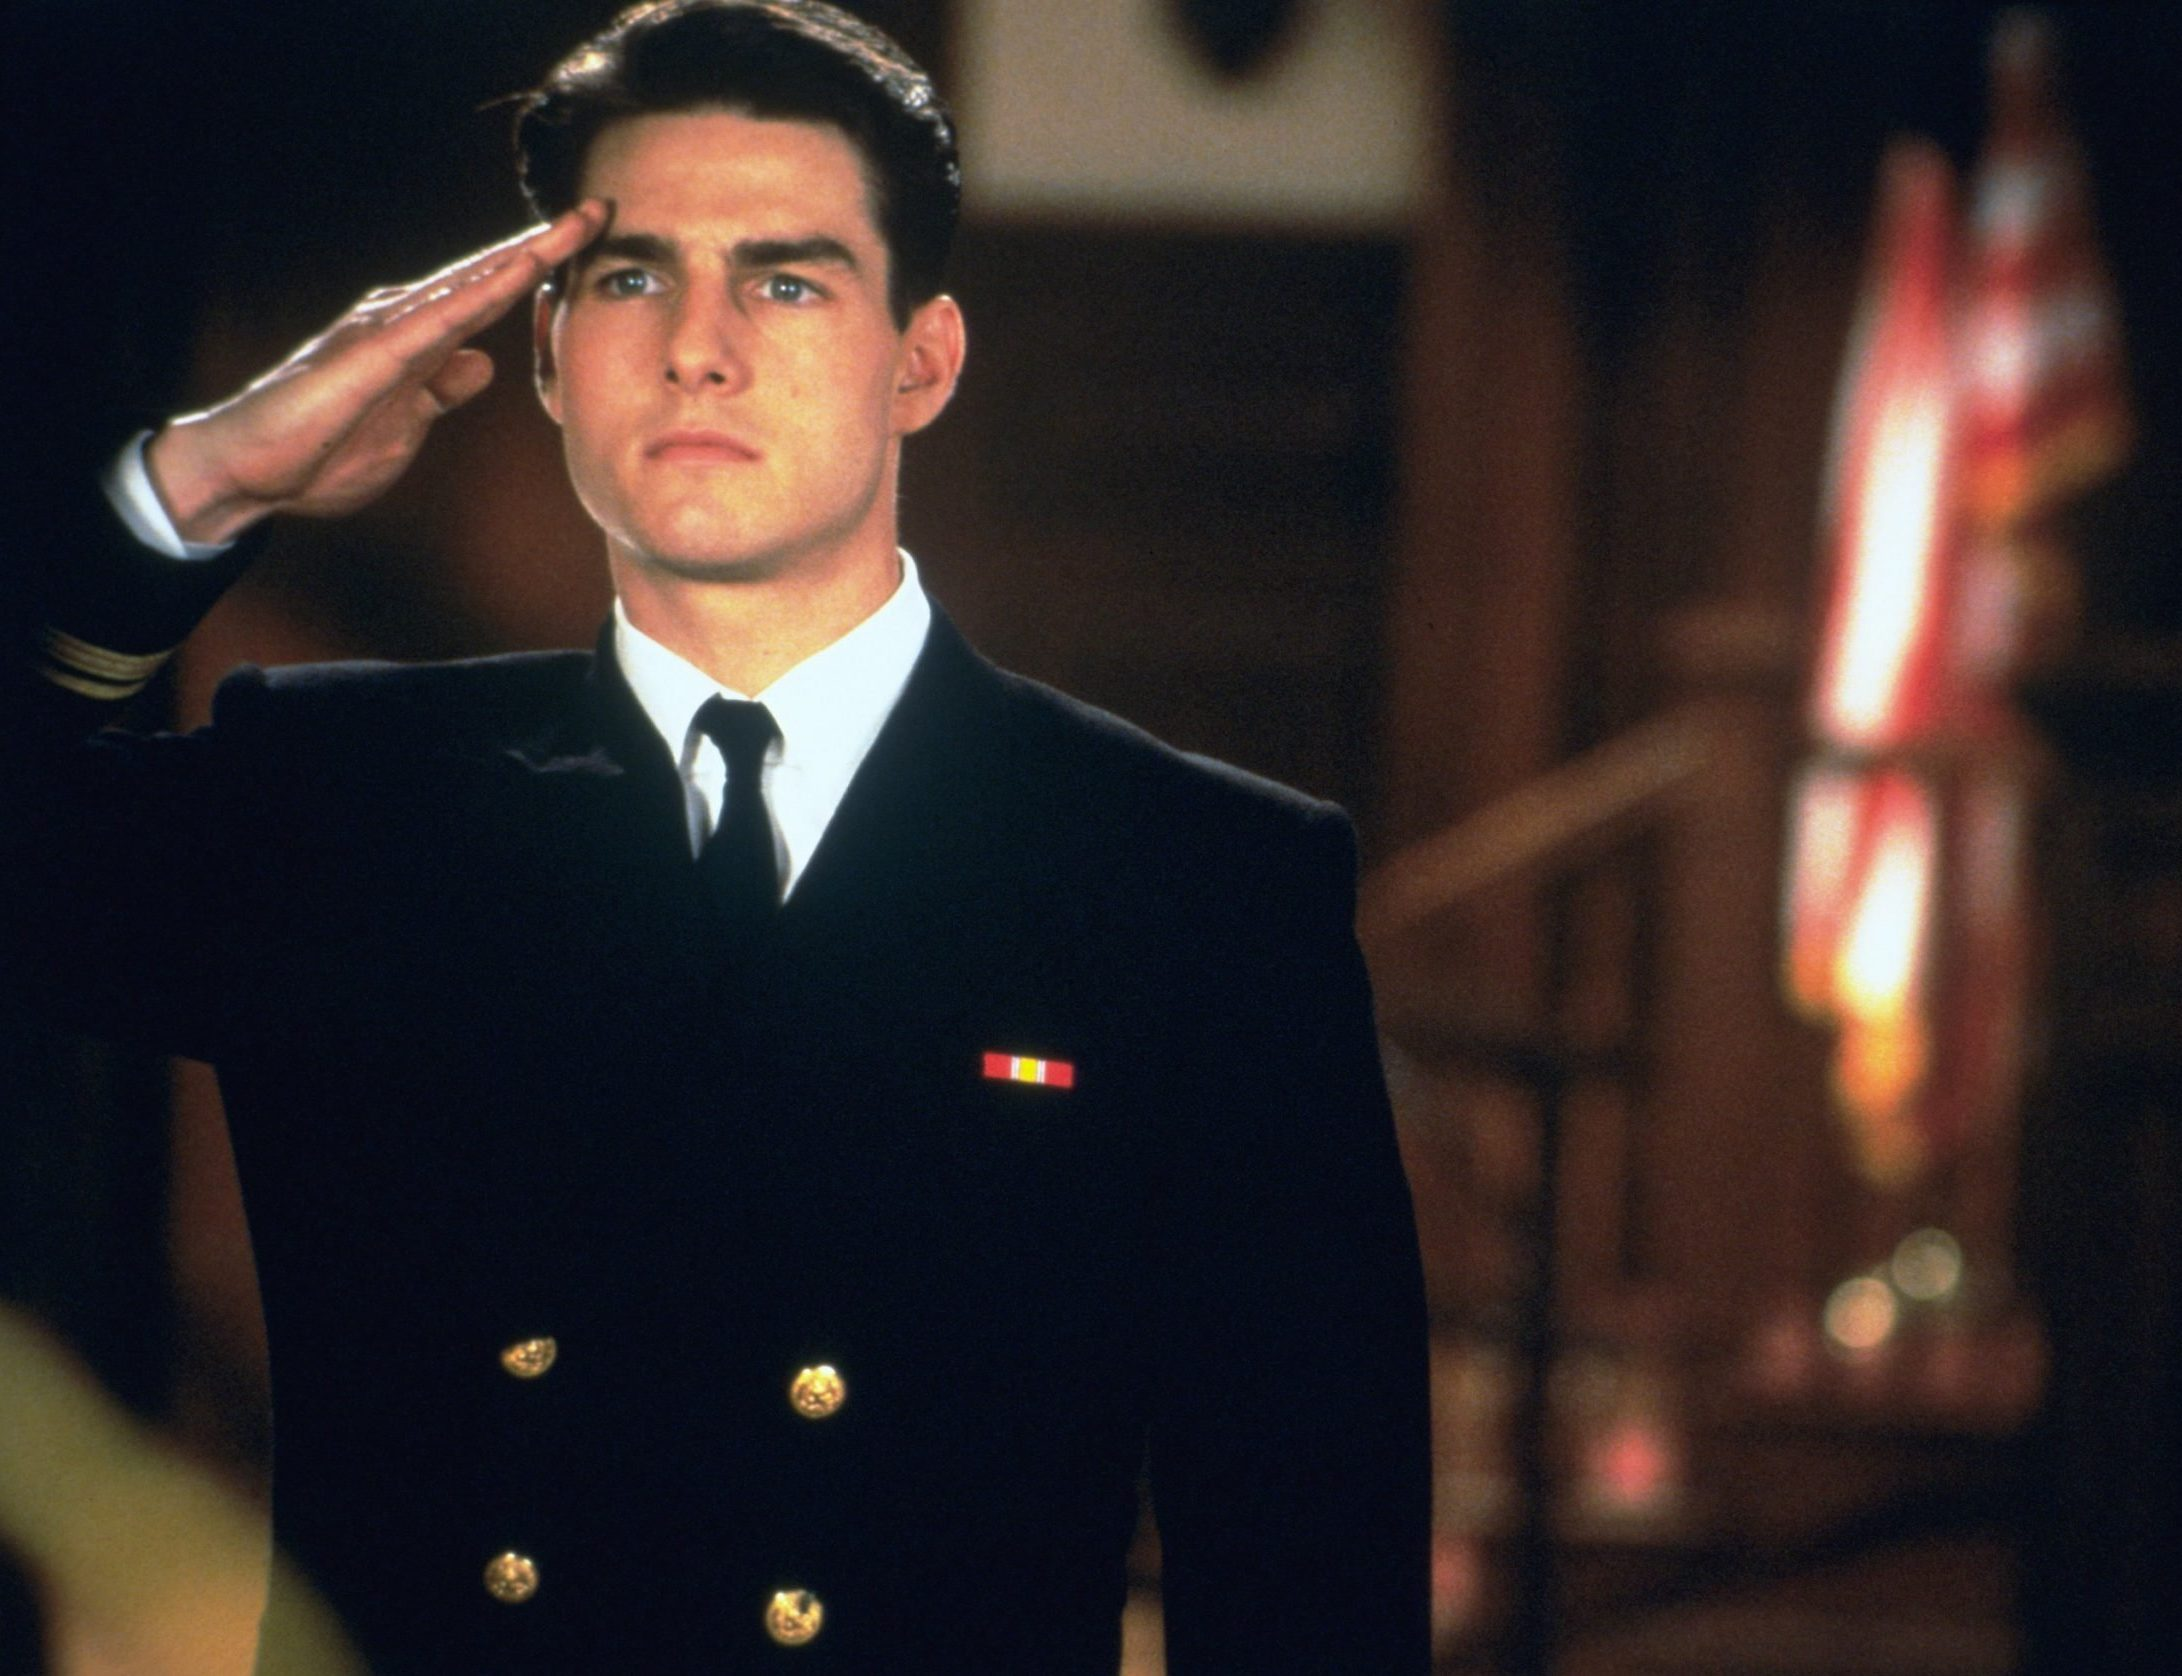 a few good men 70825087 scaled 1 e1616585531240 You Can't Handle These 10 Truths About A Few Good Men